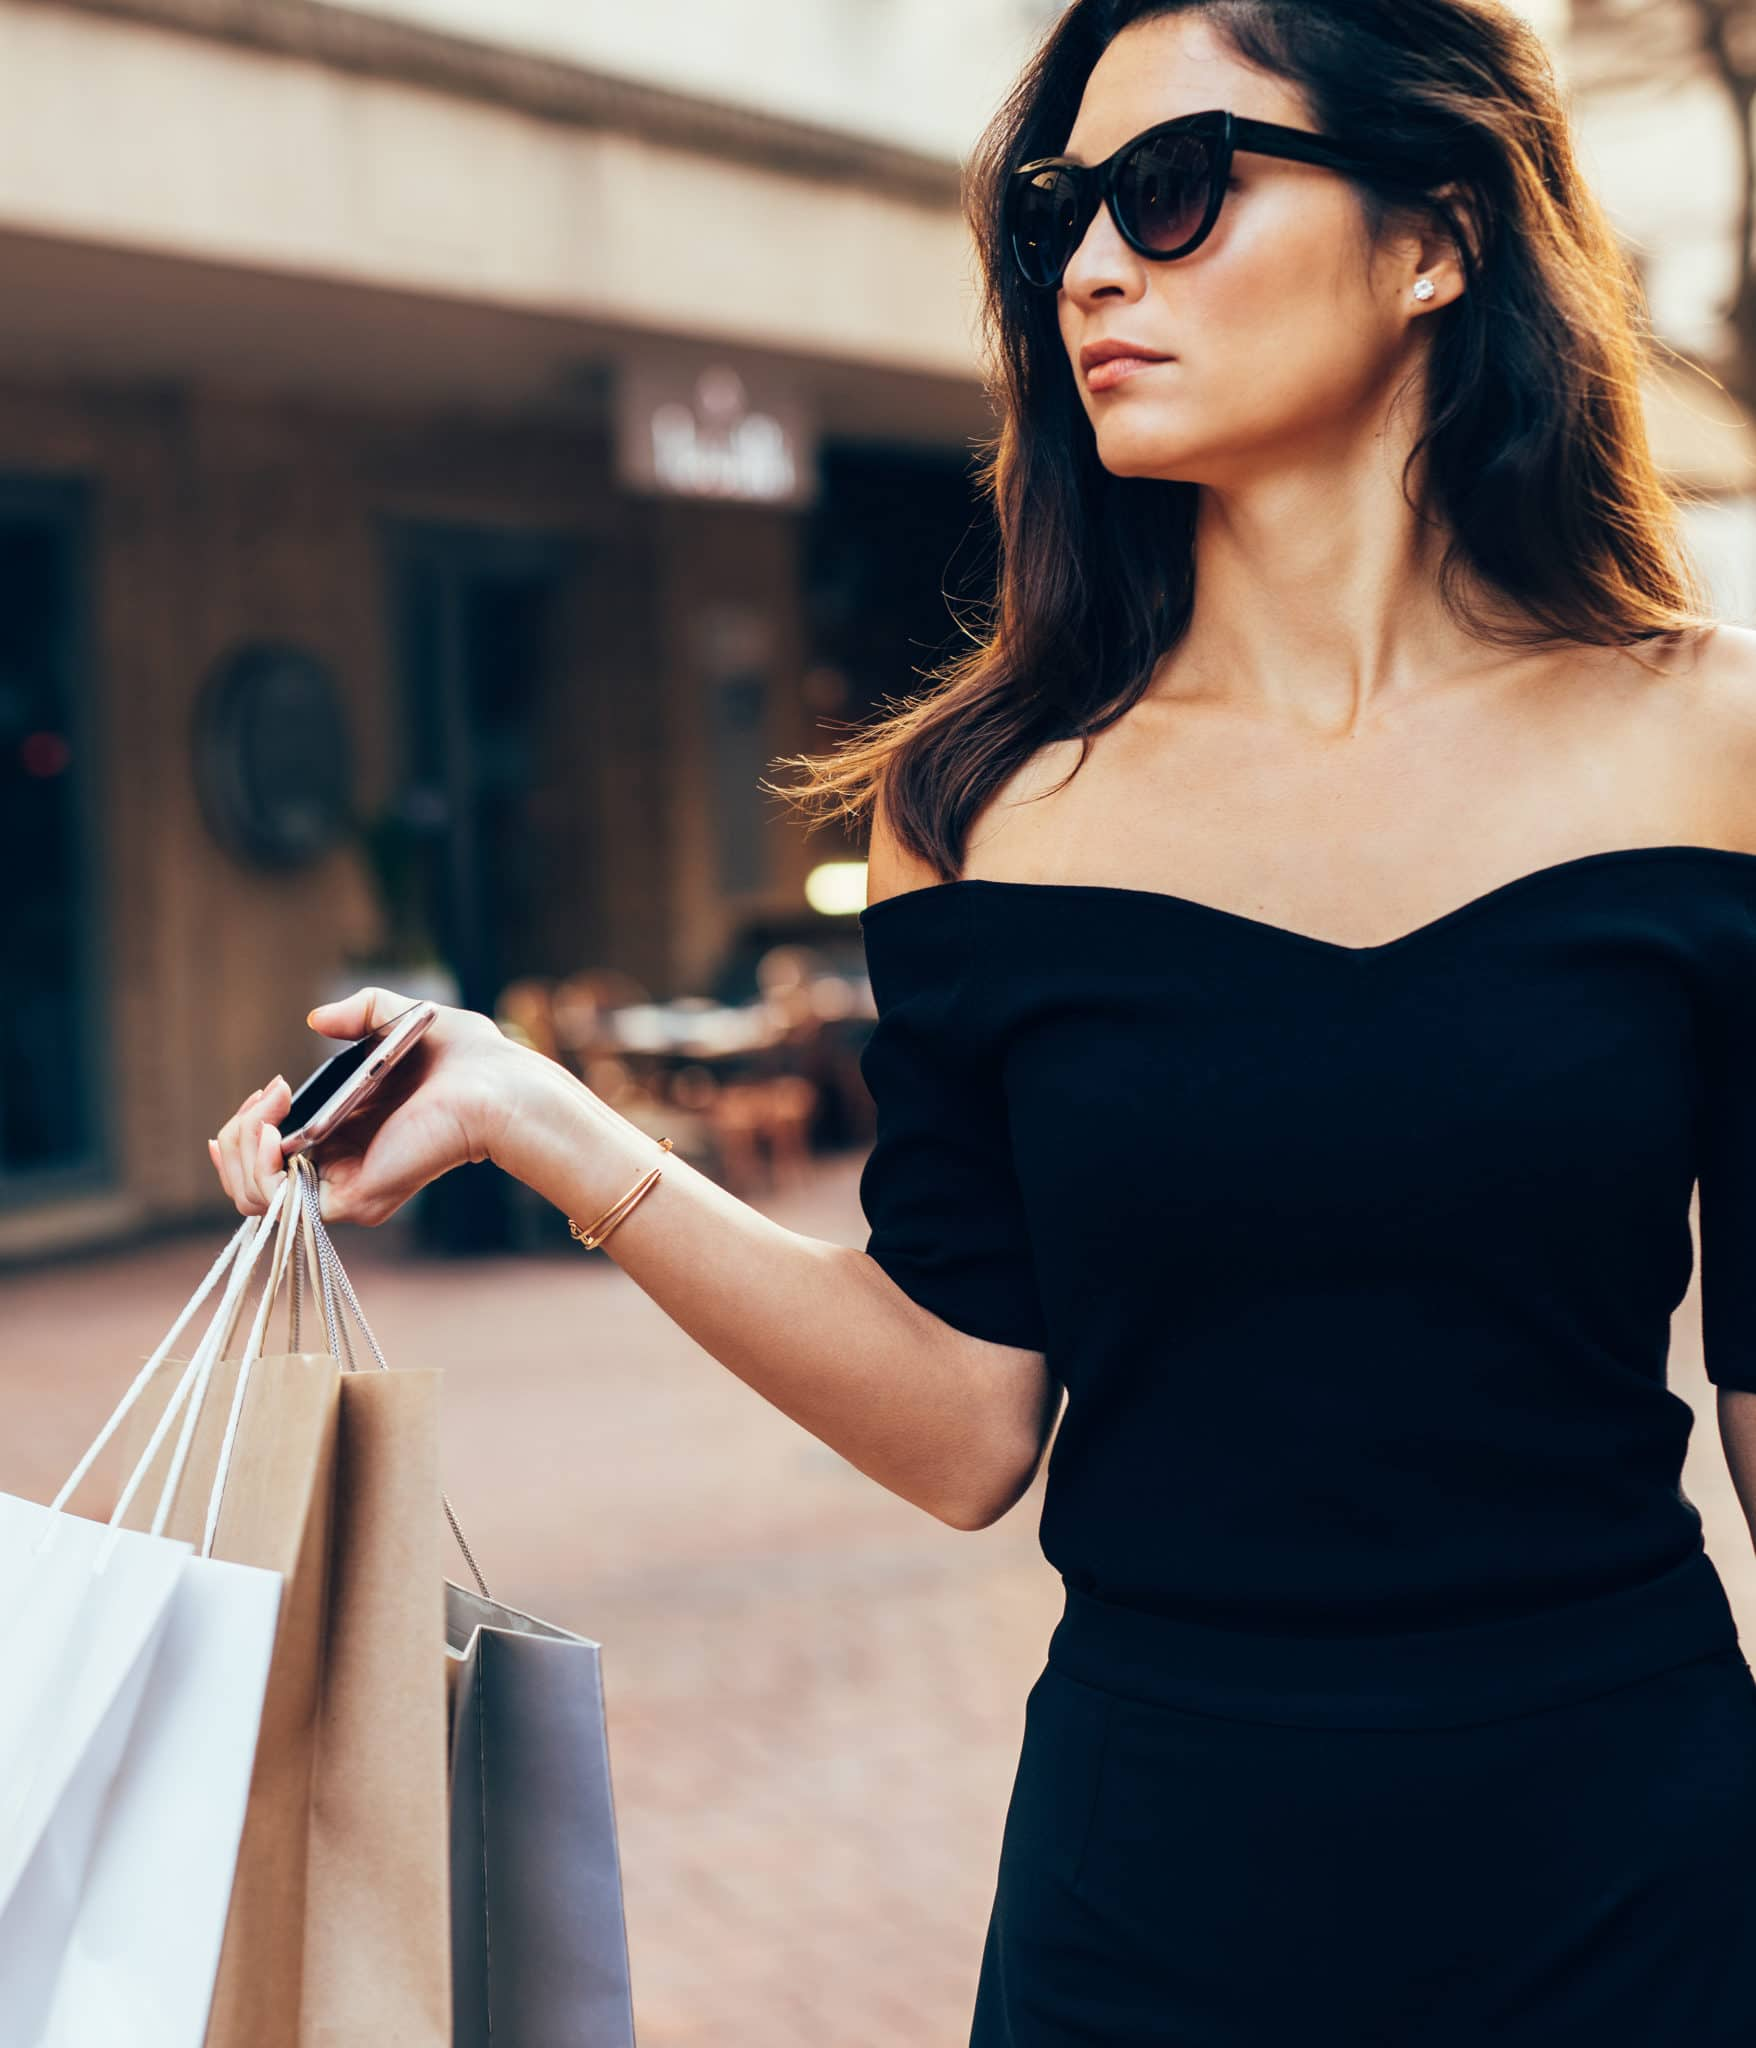 Stylish asia woman walking on the street with shopping bags. Beautiful female model outdoors in road after shopping.